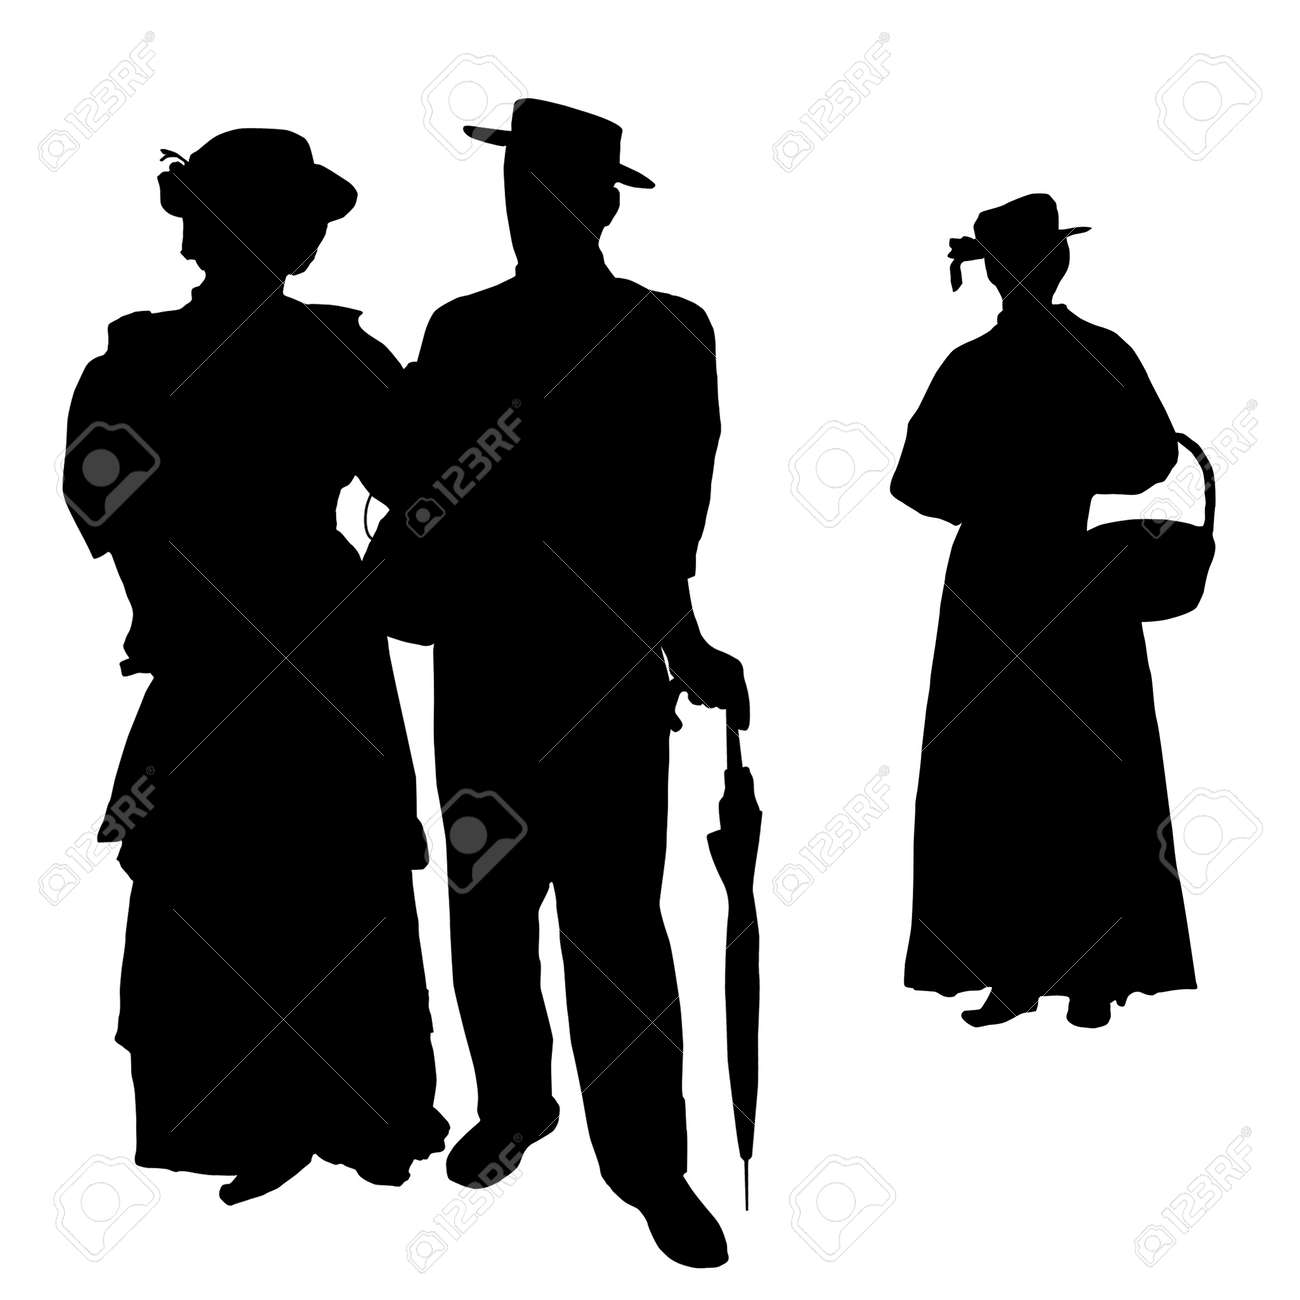 Vintage people silhouettes on white background, vector illustration Stock Vector - 16229744